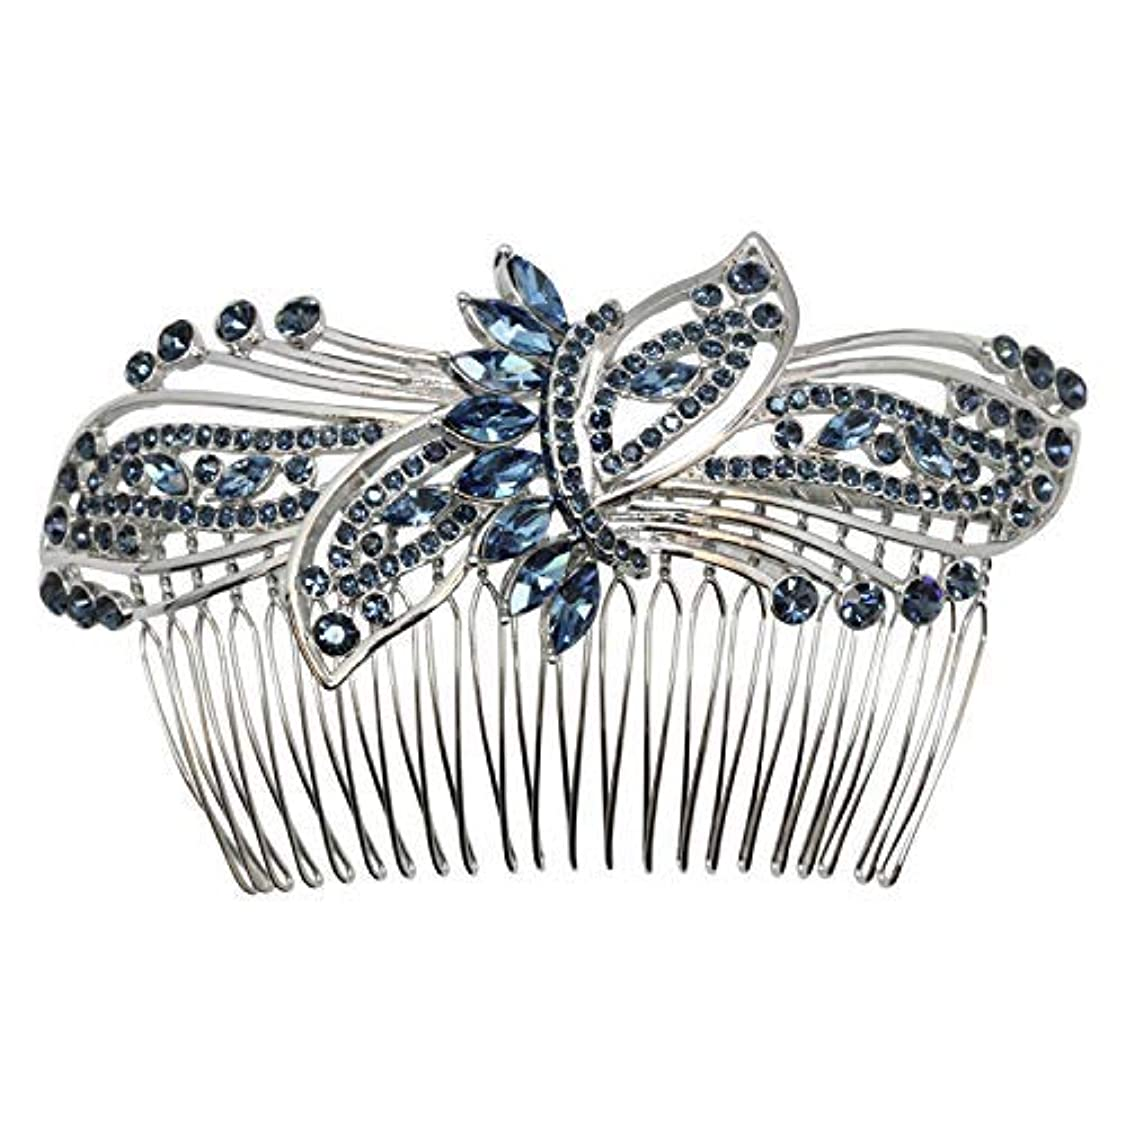 Faship Gorgeous Navy Blue Rhinestone Crystal Huge Floral Hair Comb [並行輸入品]